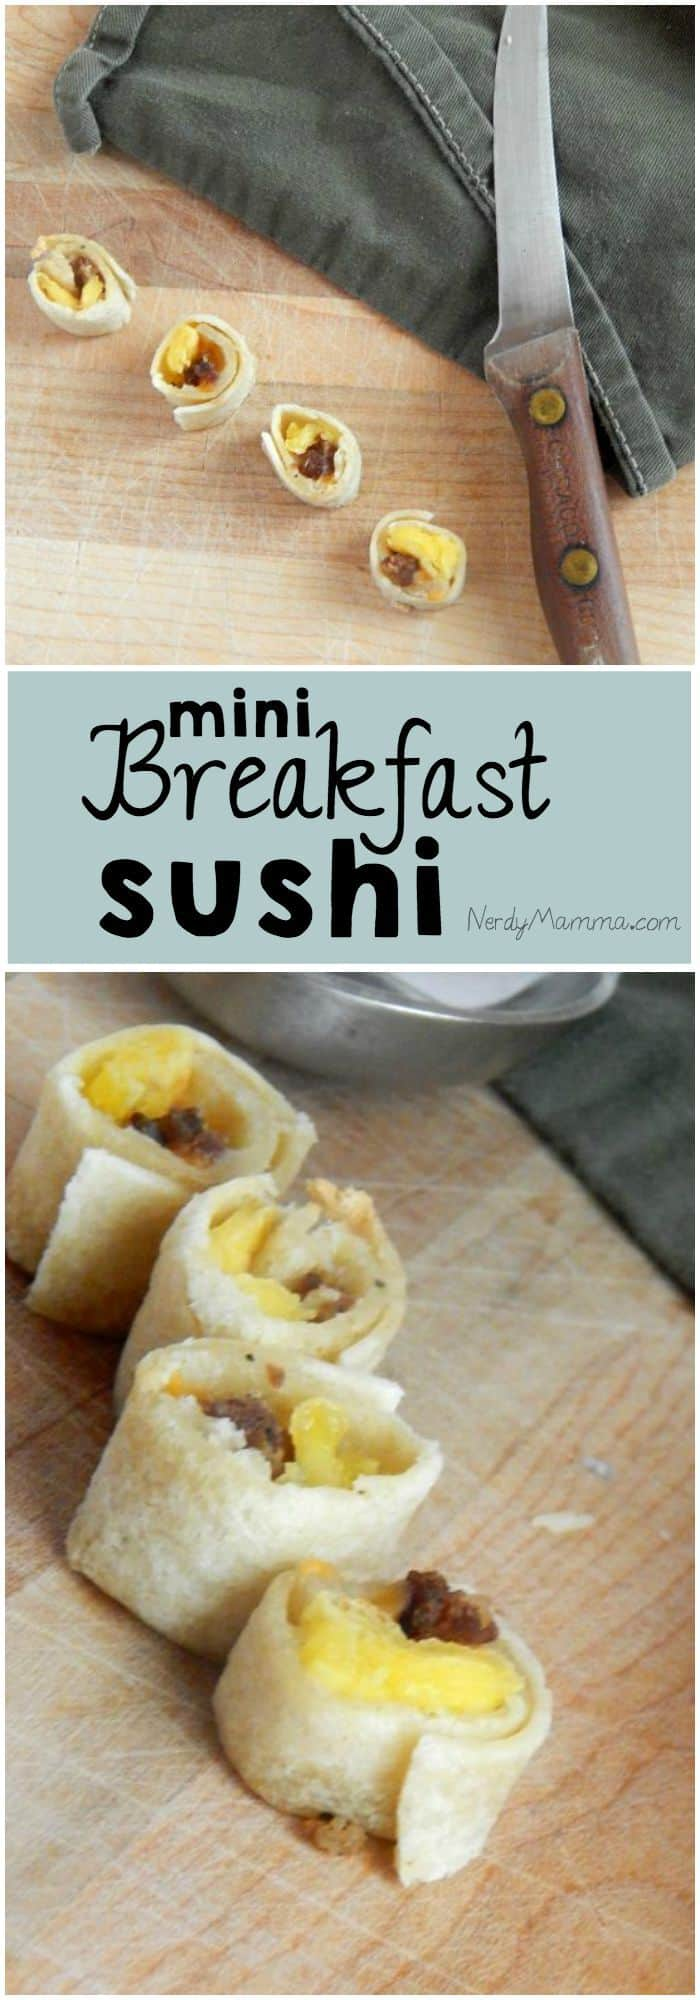 I love this creative use for breakfast leftovers for kids lunch boxes.